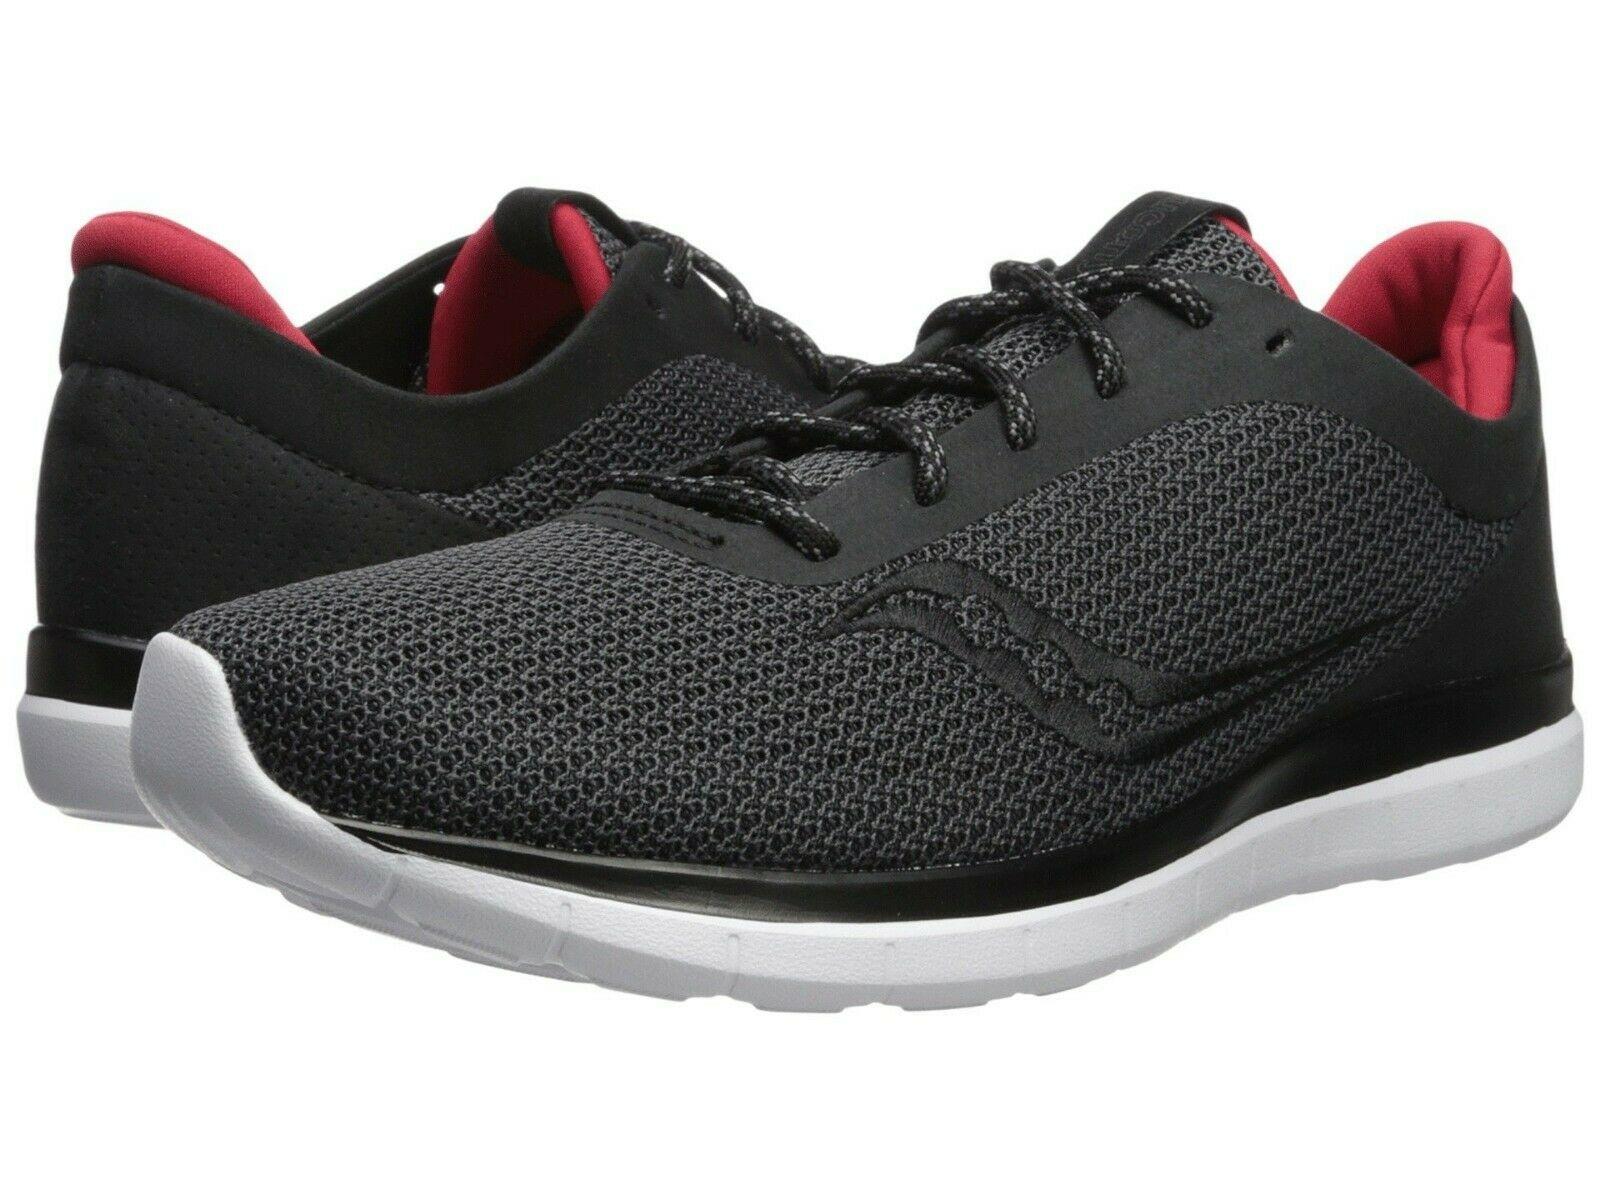 Primary image for Saucony Men's Liteform Escape Running Shoes, S40018-1, Black\Charcoal, US 12.5